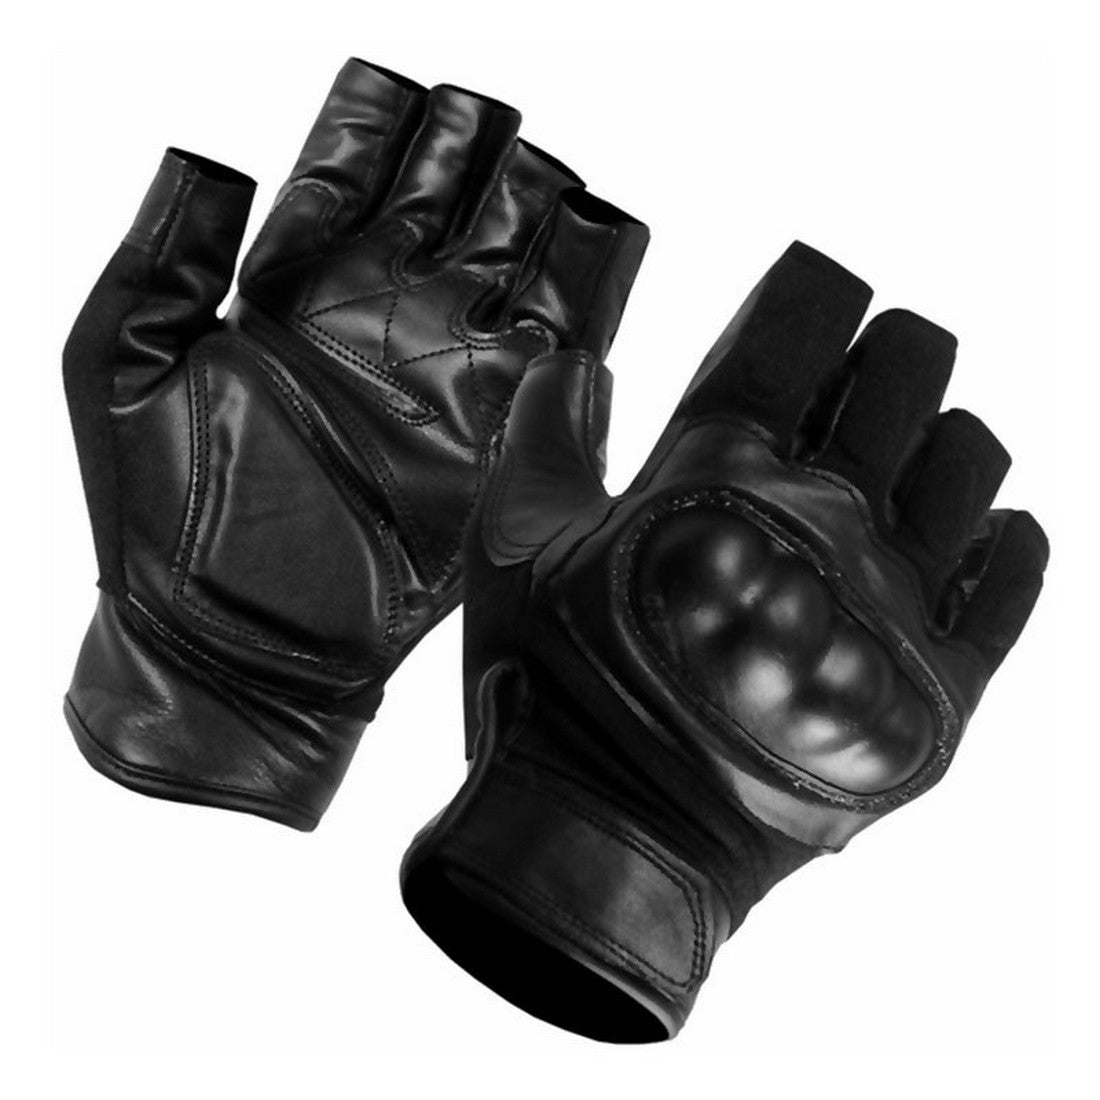 Hard knuckle leather gloves